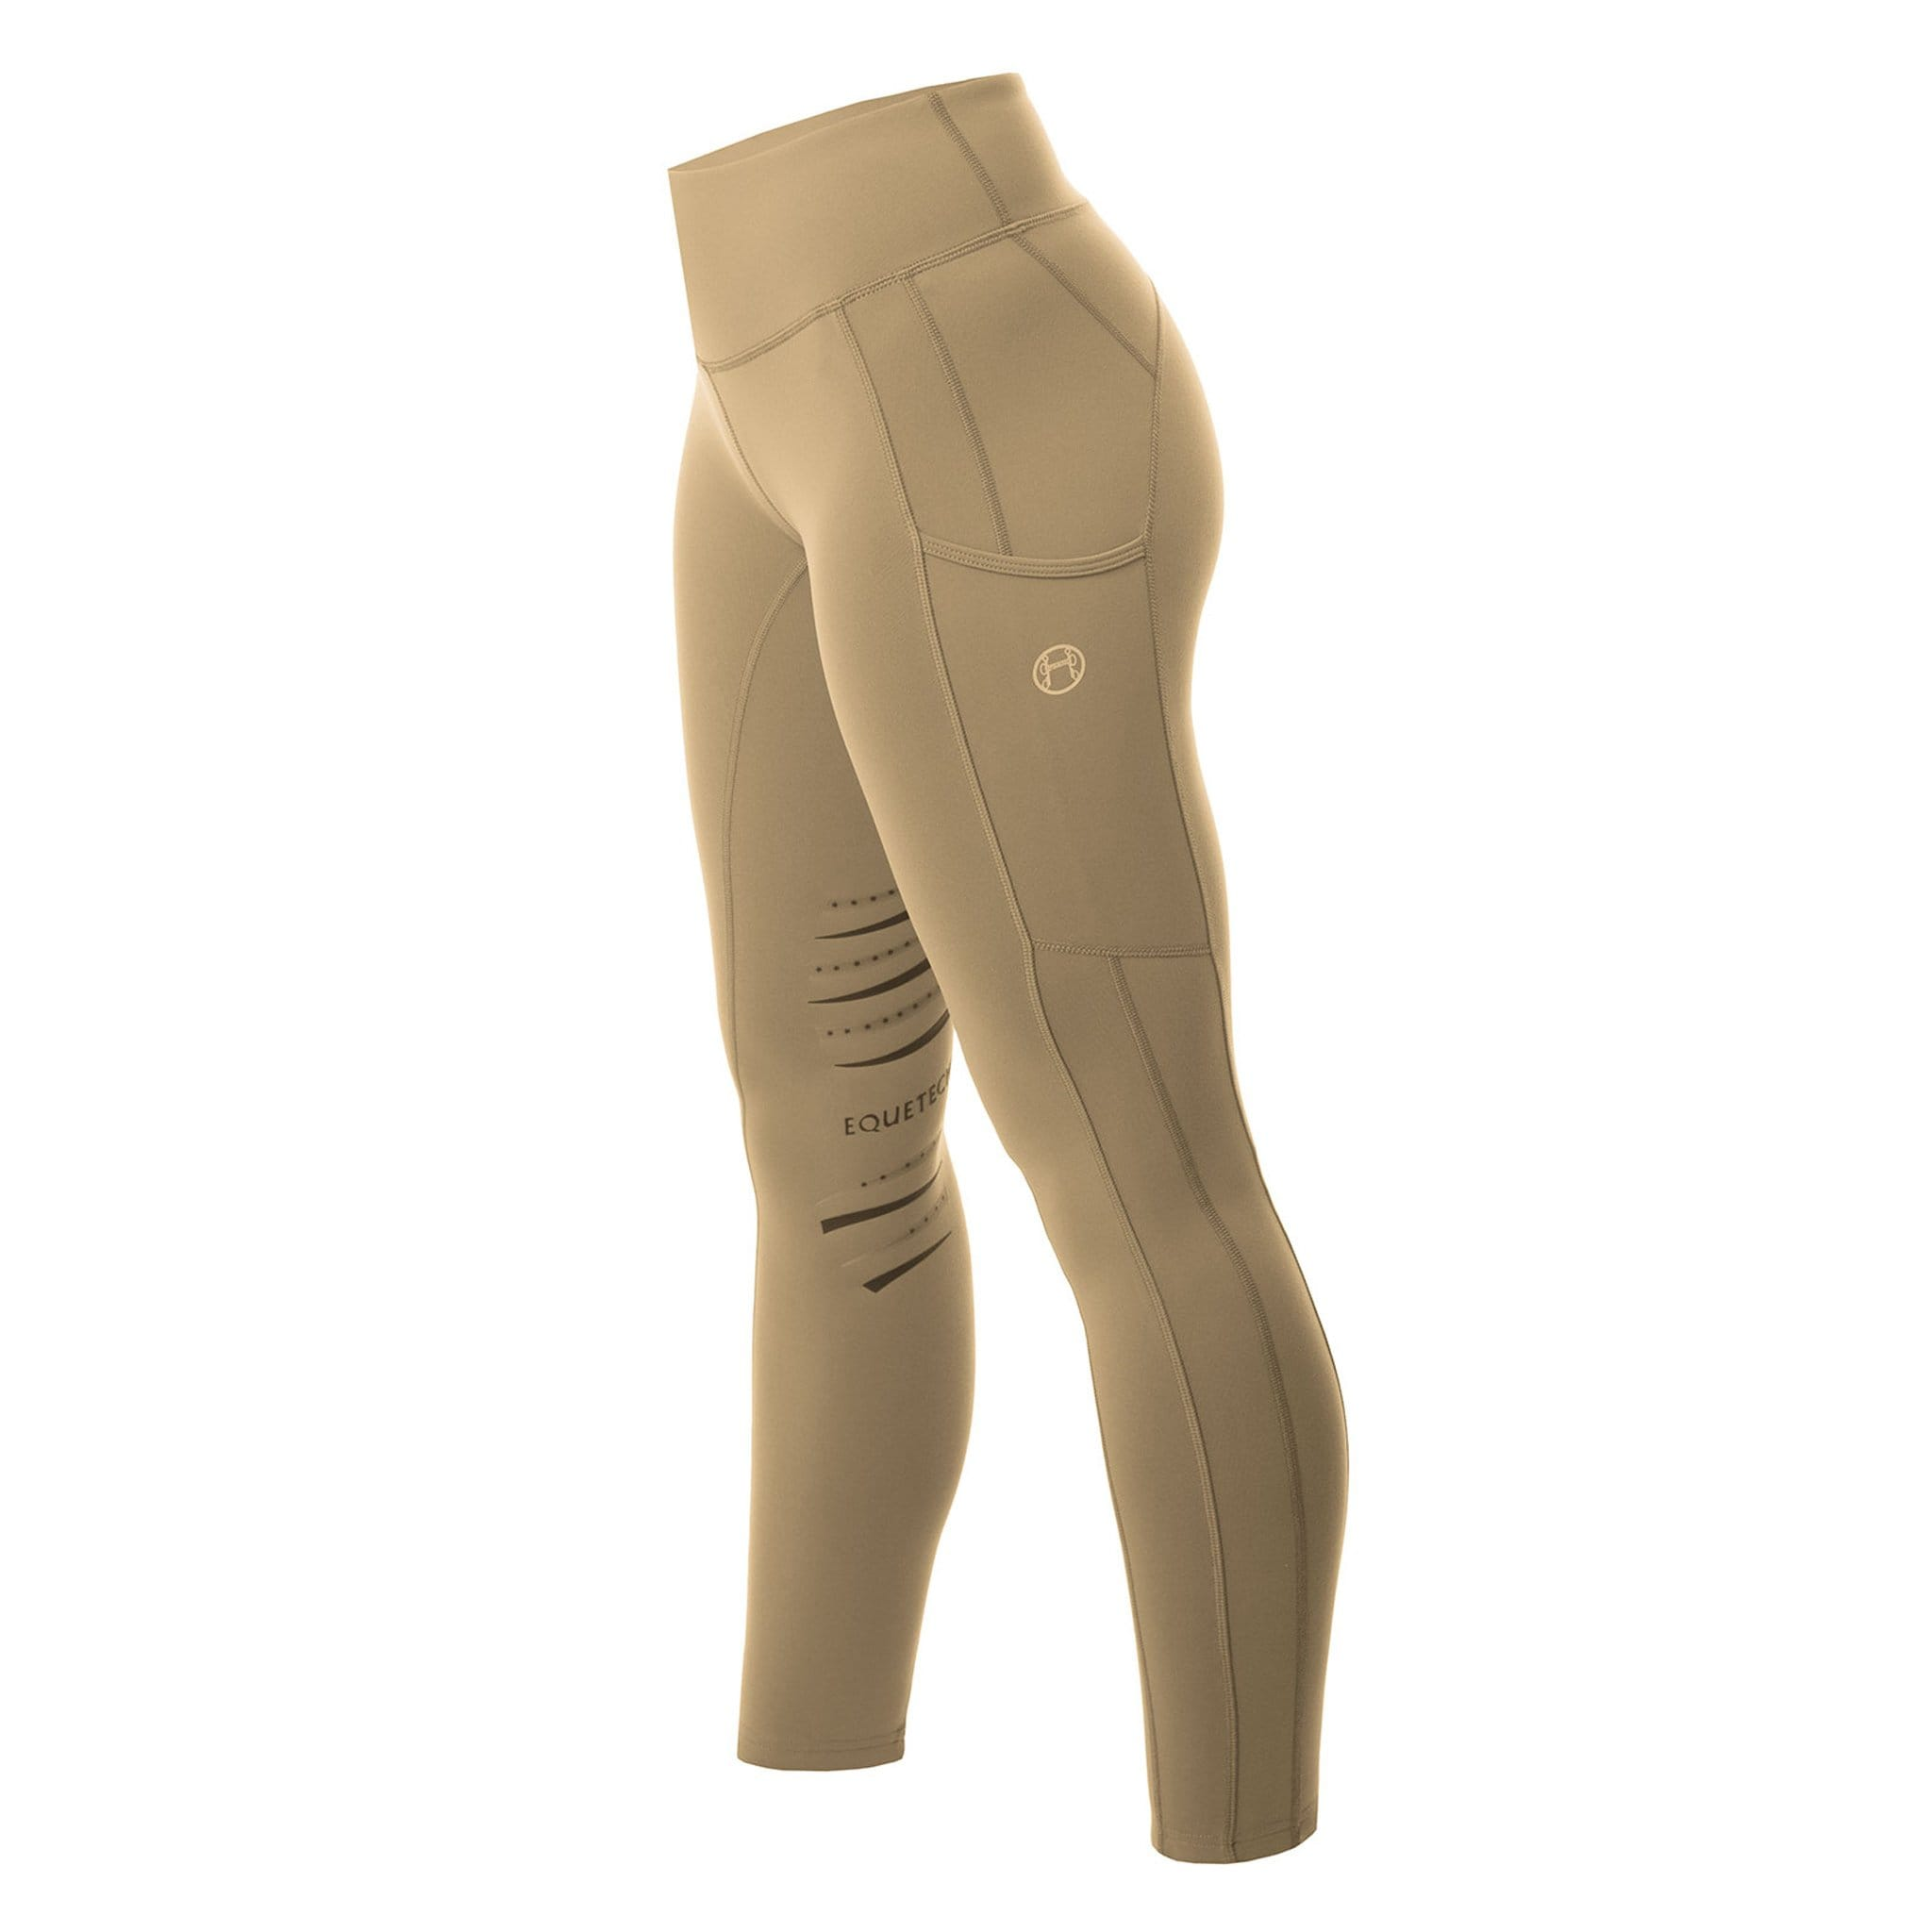 Equetech Inspire Silicone Knee Patch Riding Tights IRT Beige Side View